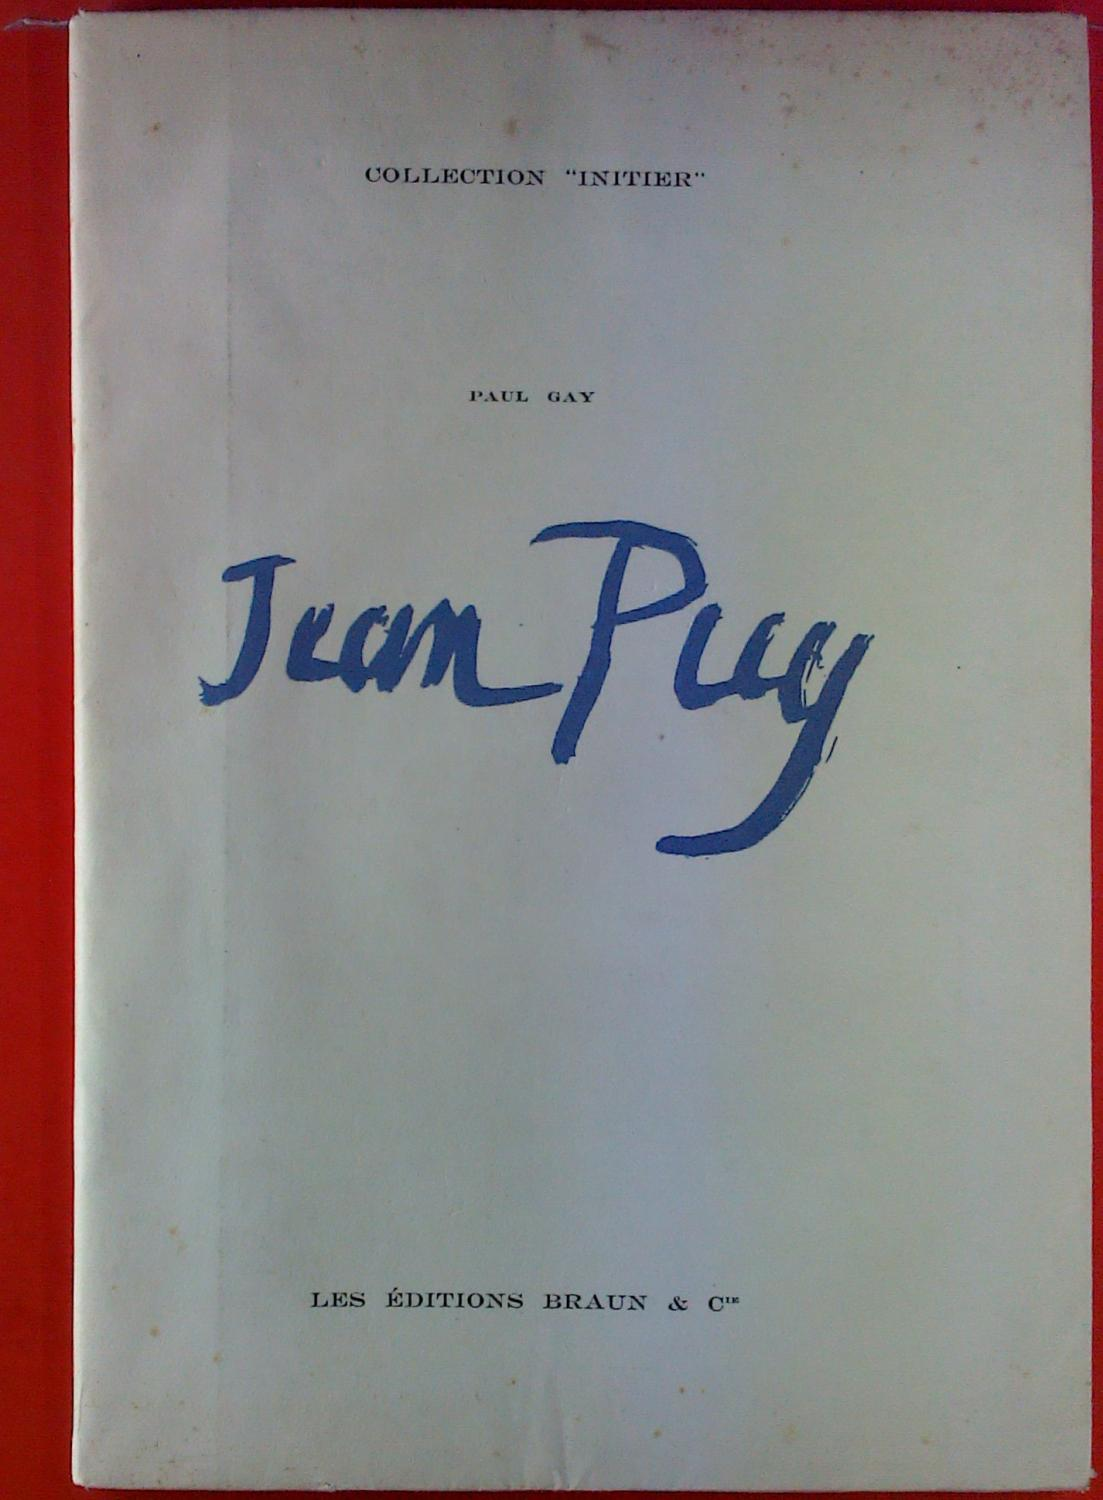 Jean Puy. Collection Initier.: Paul Gay